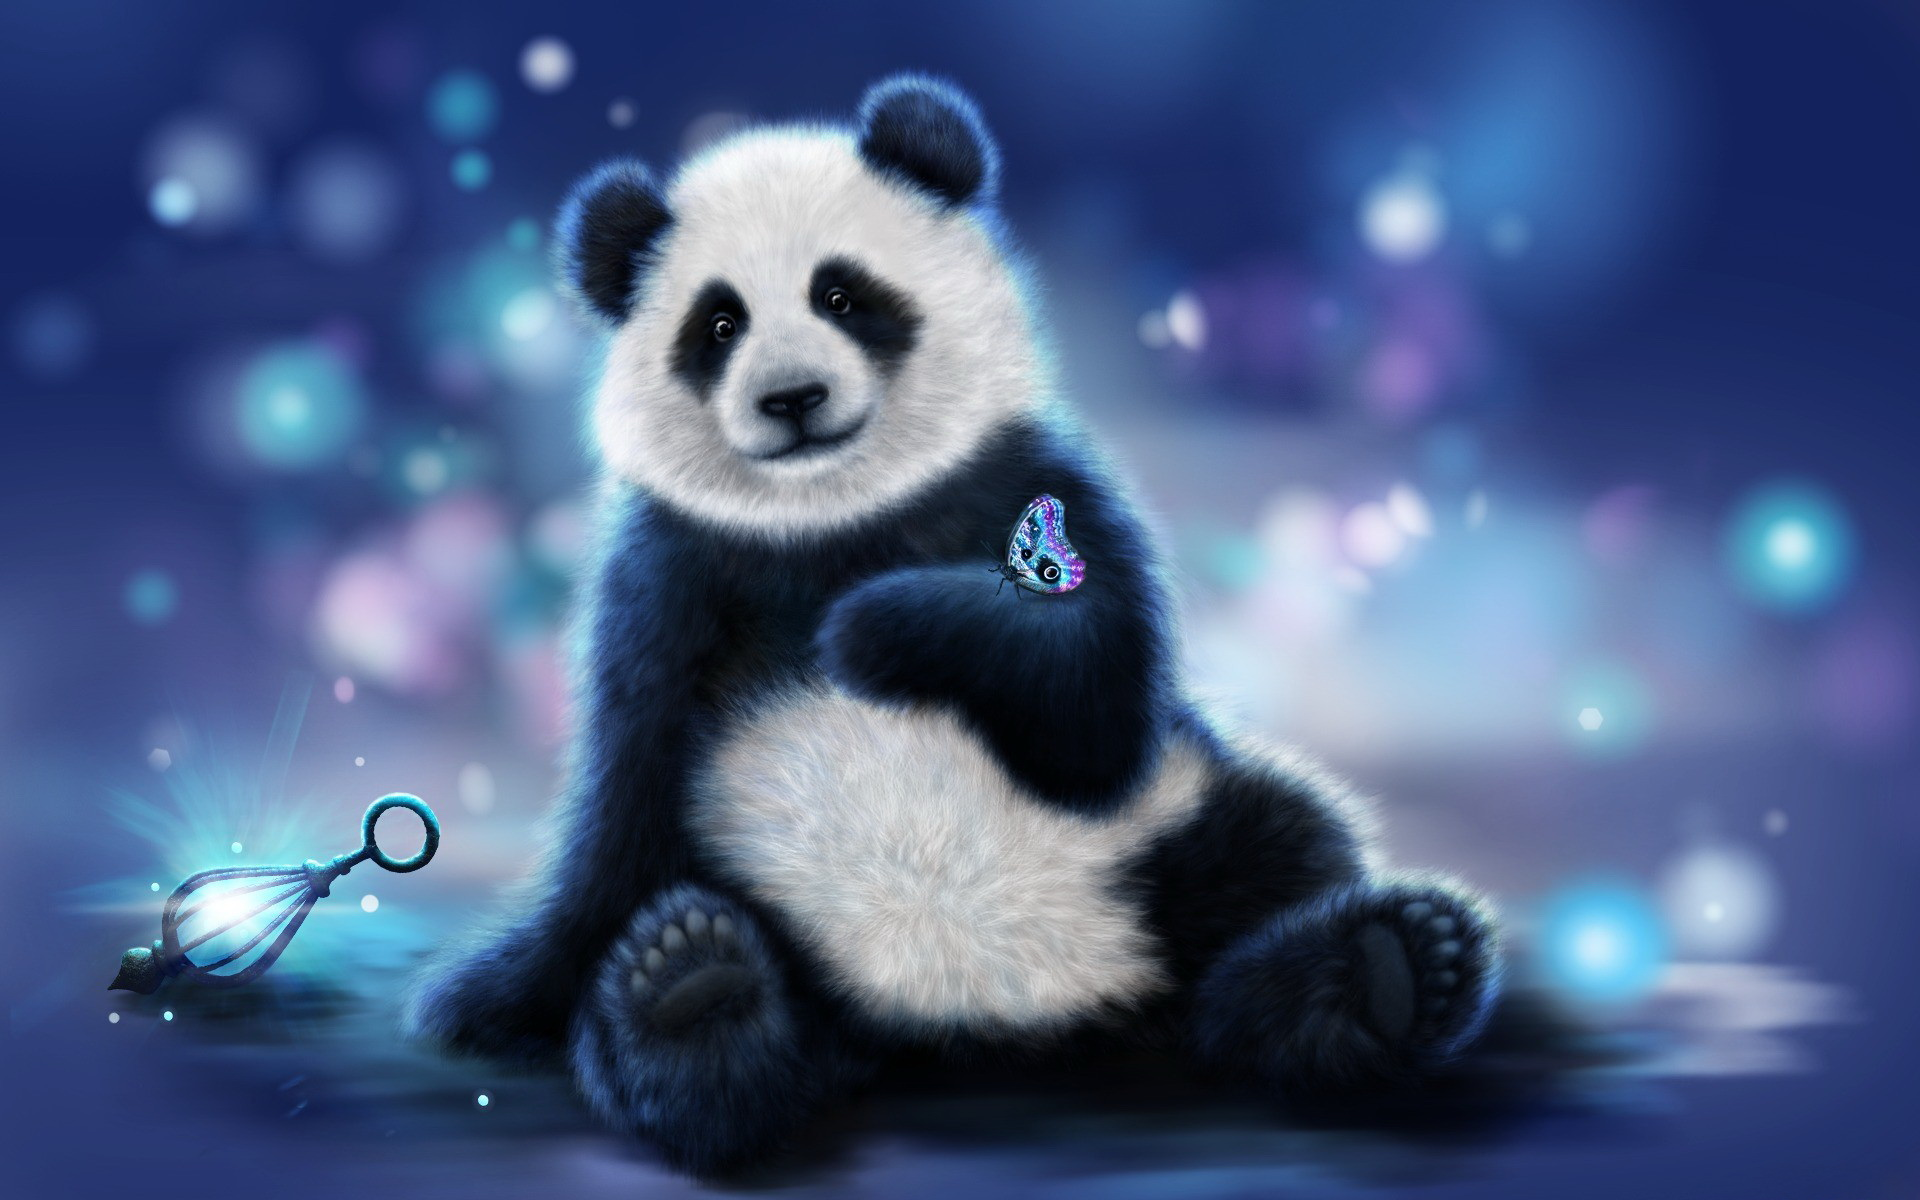 Butterfly on Cute Panda Hand Animated Wallpaper wallpaper ...